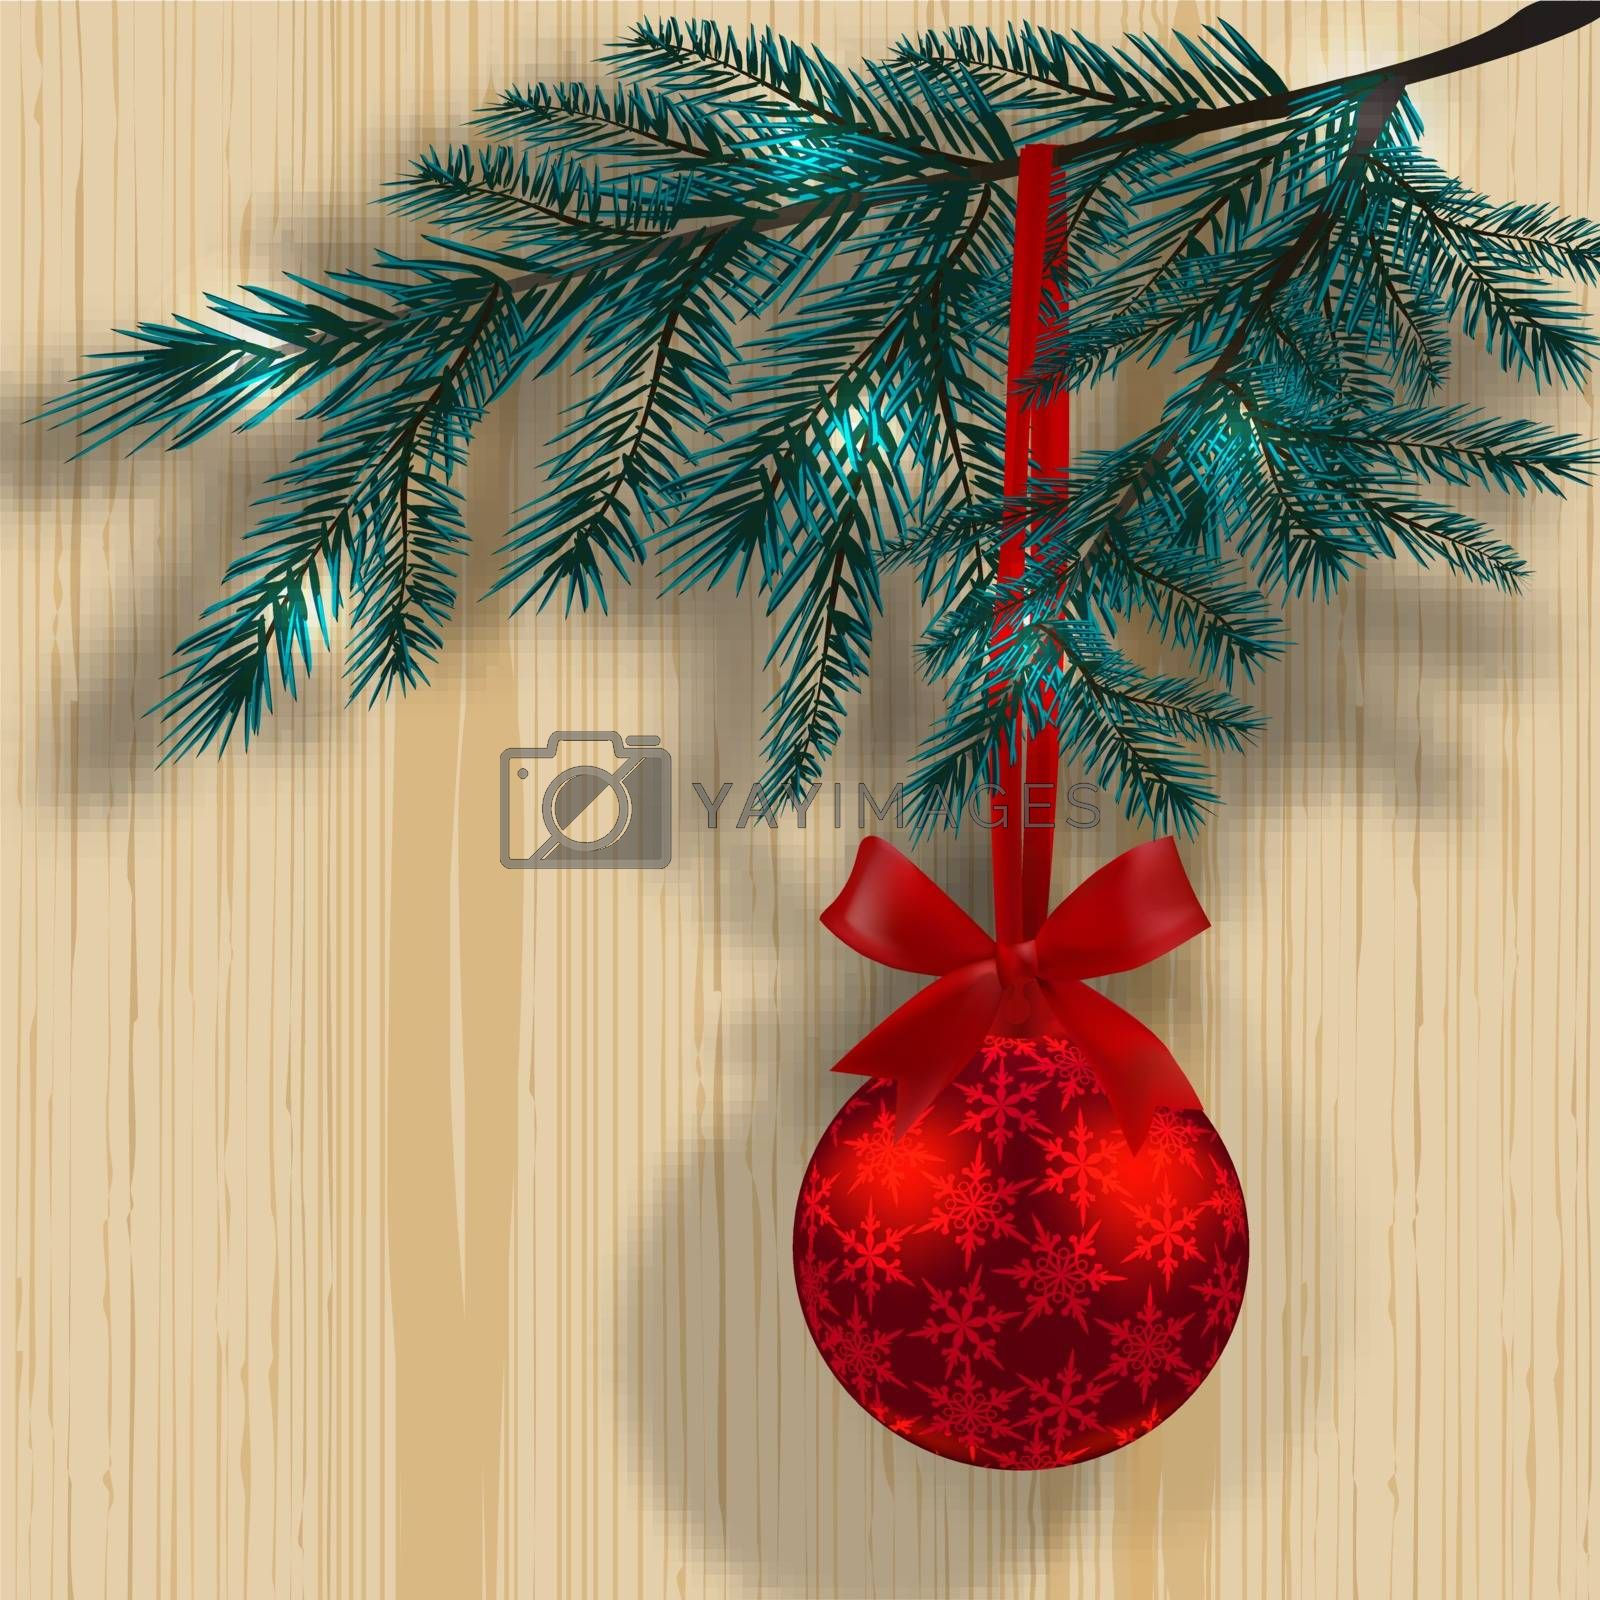 Blue Christmas tree branches on the background of a wooden texture with shadow. Red ball with snowflakes and ribbon bow. Vector illustration